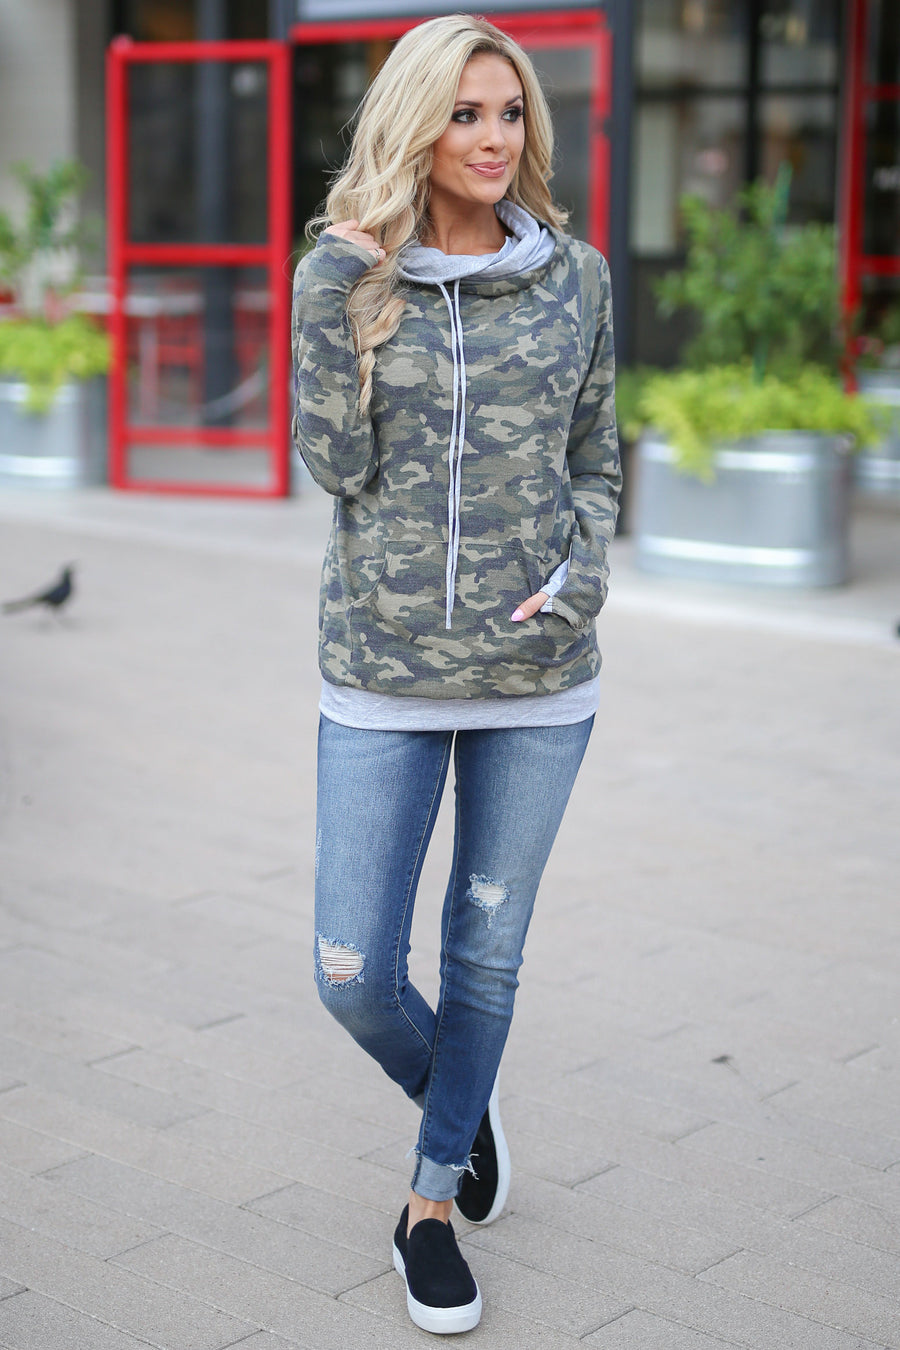 Keep It Confidential Hoodie - Camo print pullover sweatshirt with pocket, drawstrings and thumbholes closet candy boutique 1